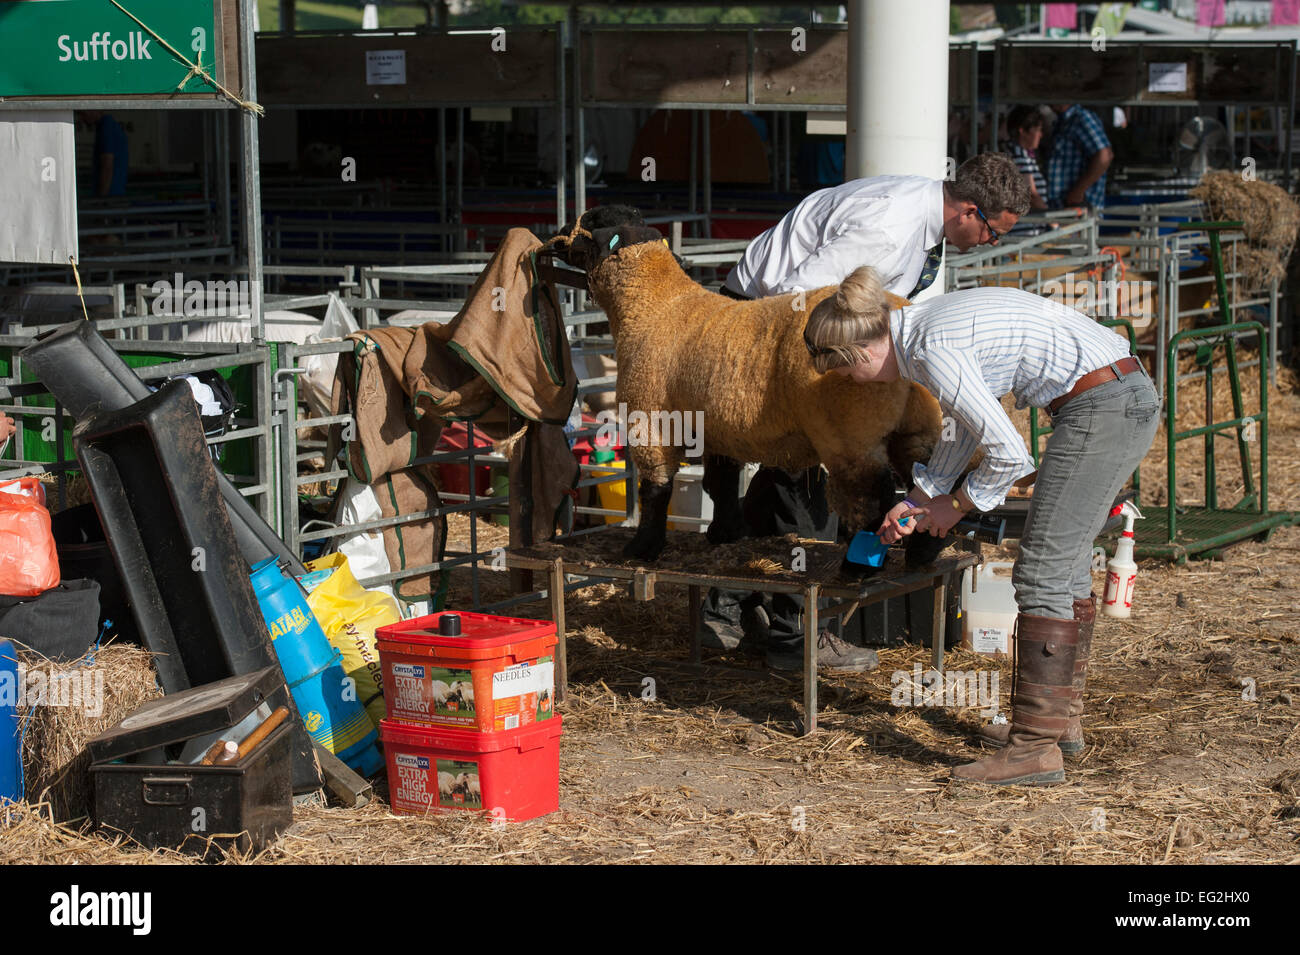 Patient competitor in Suffolk sheep class, carefully brushed by female farmer owner, before it enters competition Stock Photo